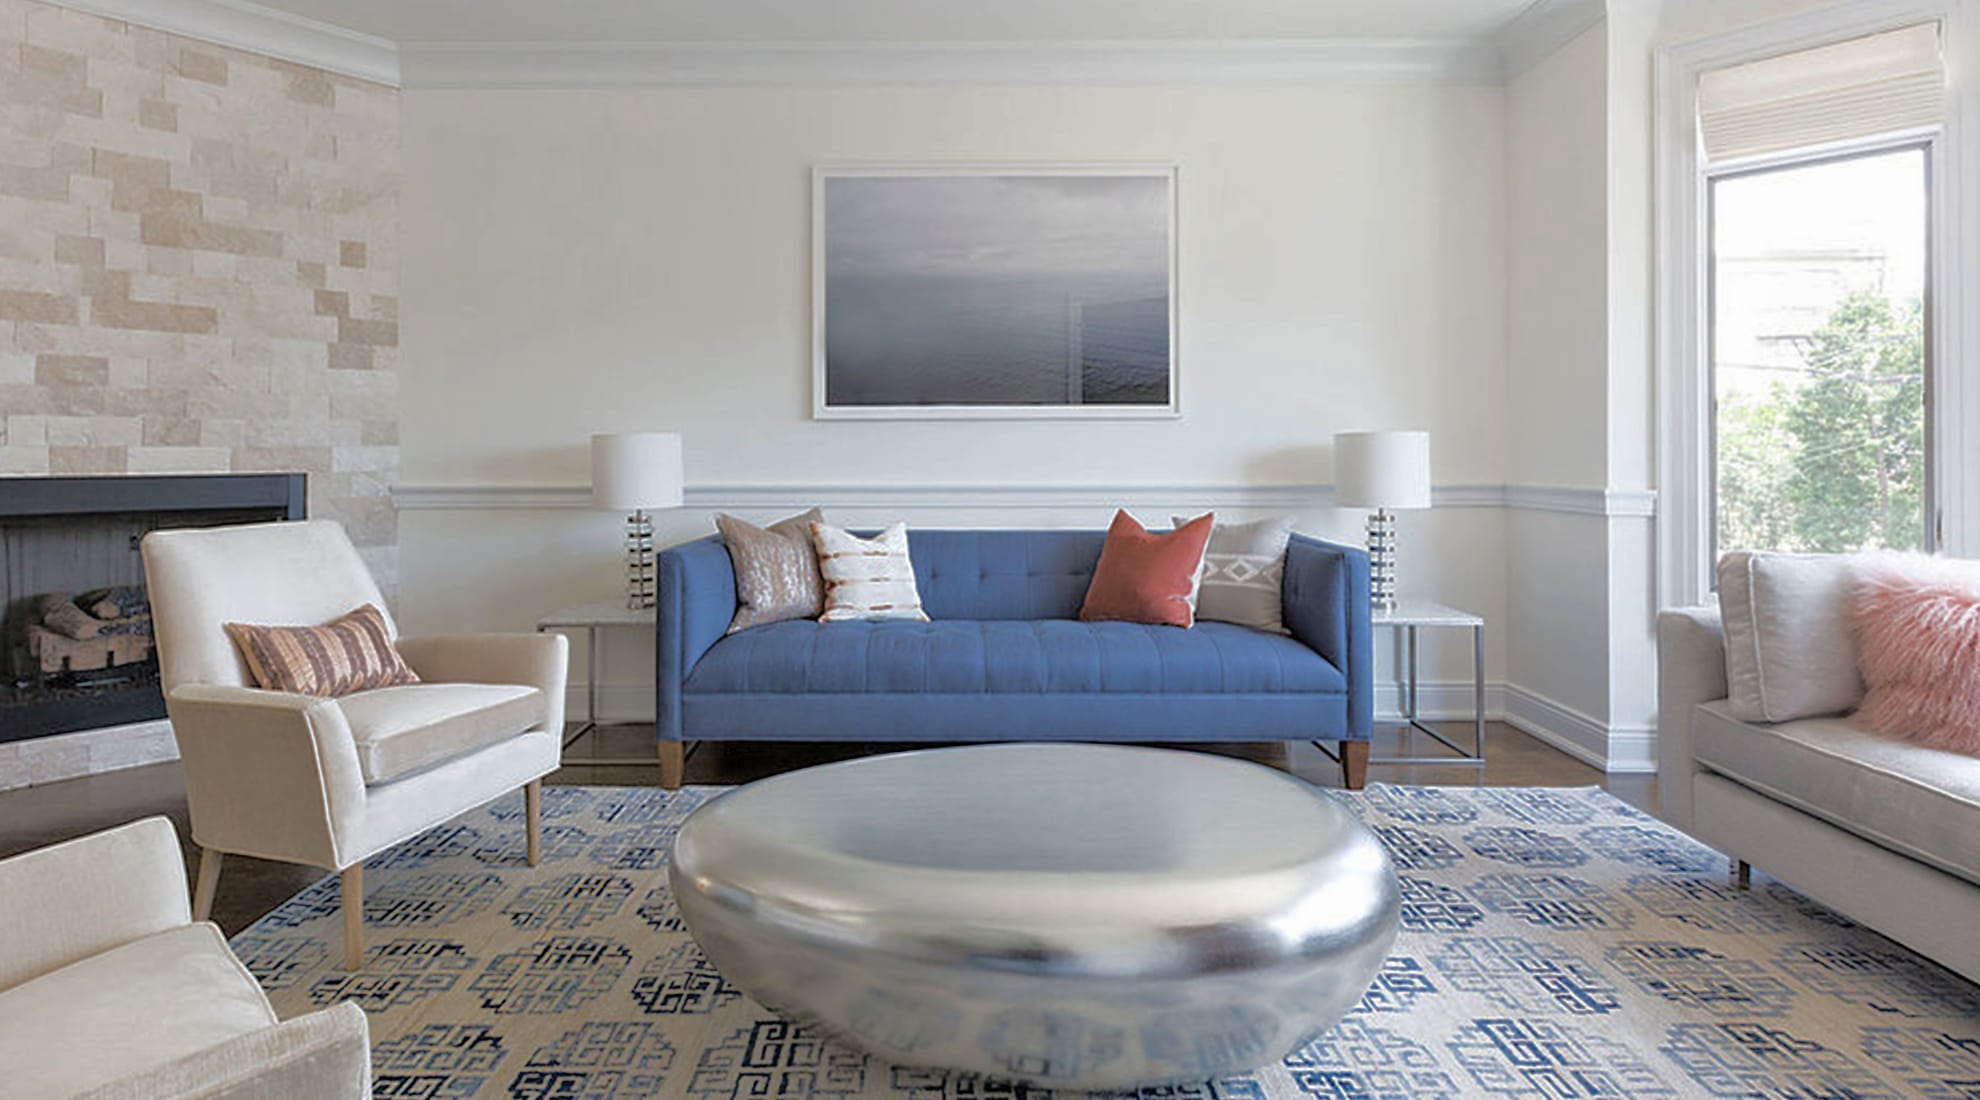 Edgewater Townhouse, New Jersey. Image via https://www.lunagreyinteriors.com/edgewater